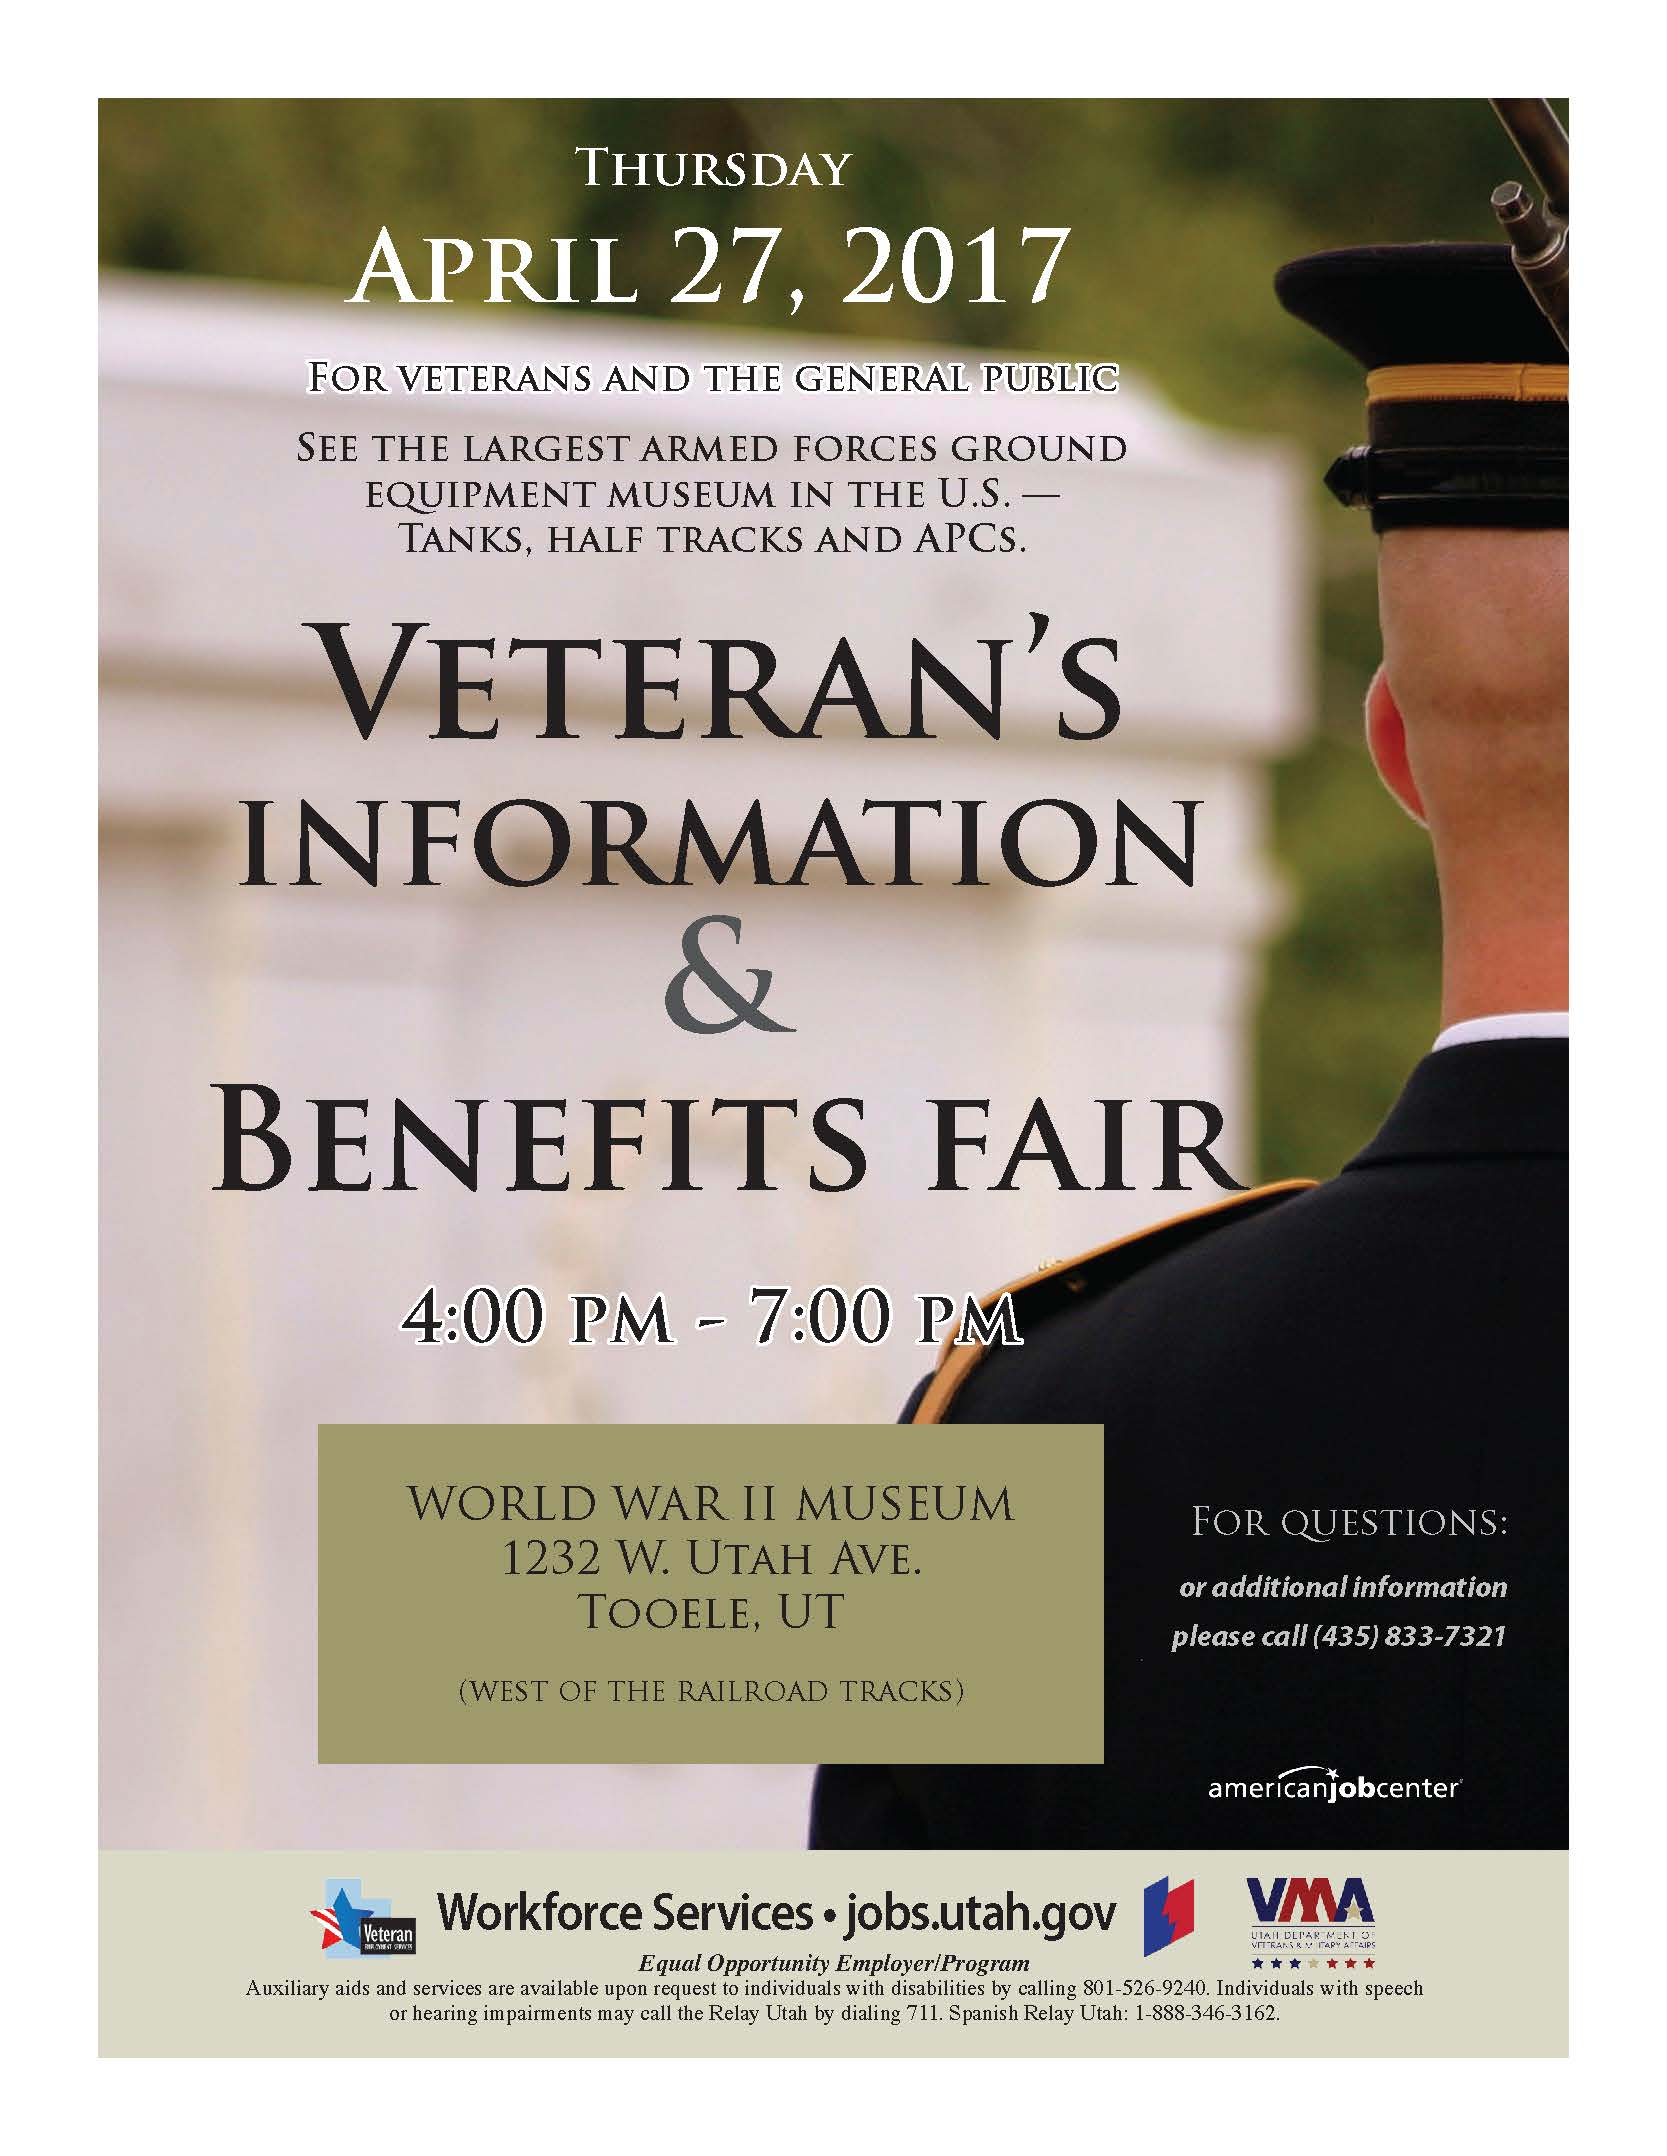 Veteran's Information and Benefits Fair @ World War II Museum | Tooele | Utah | United States